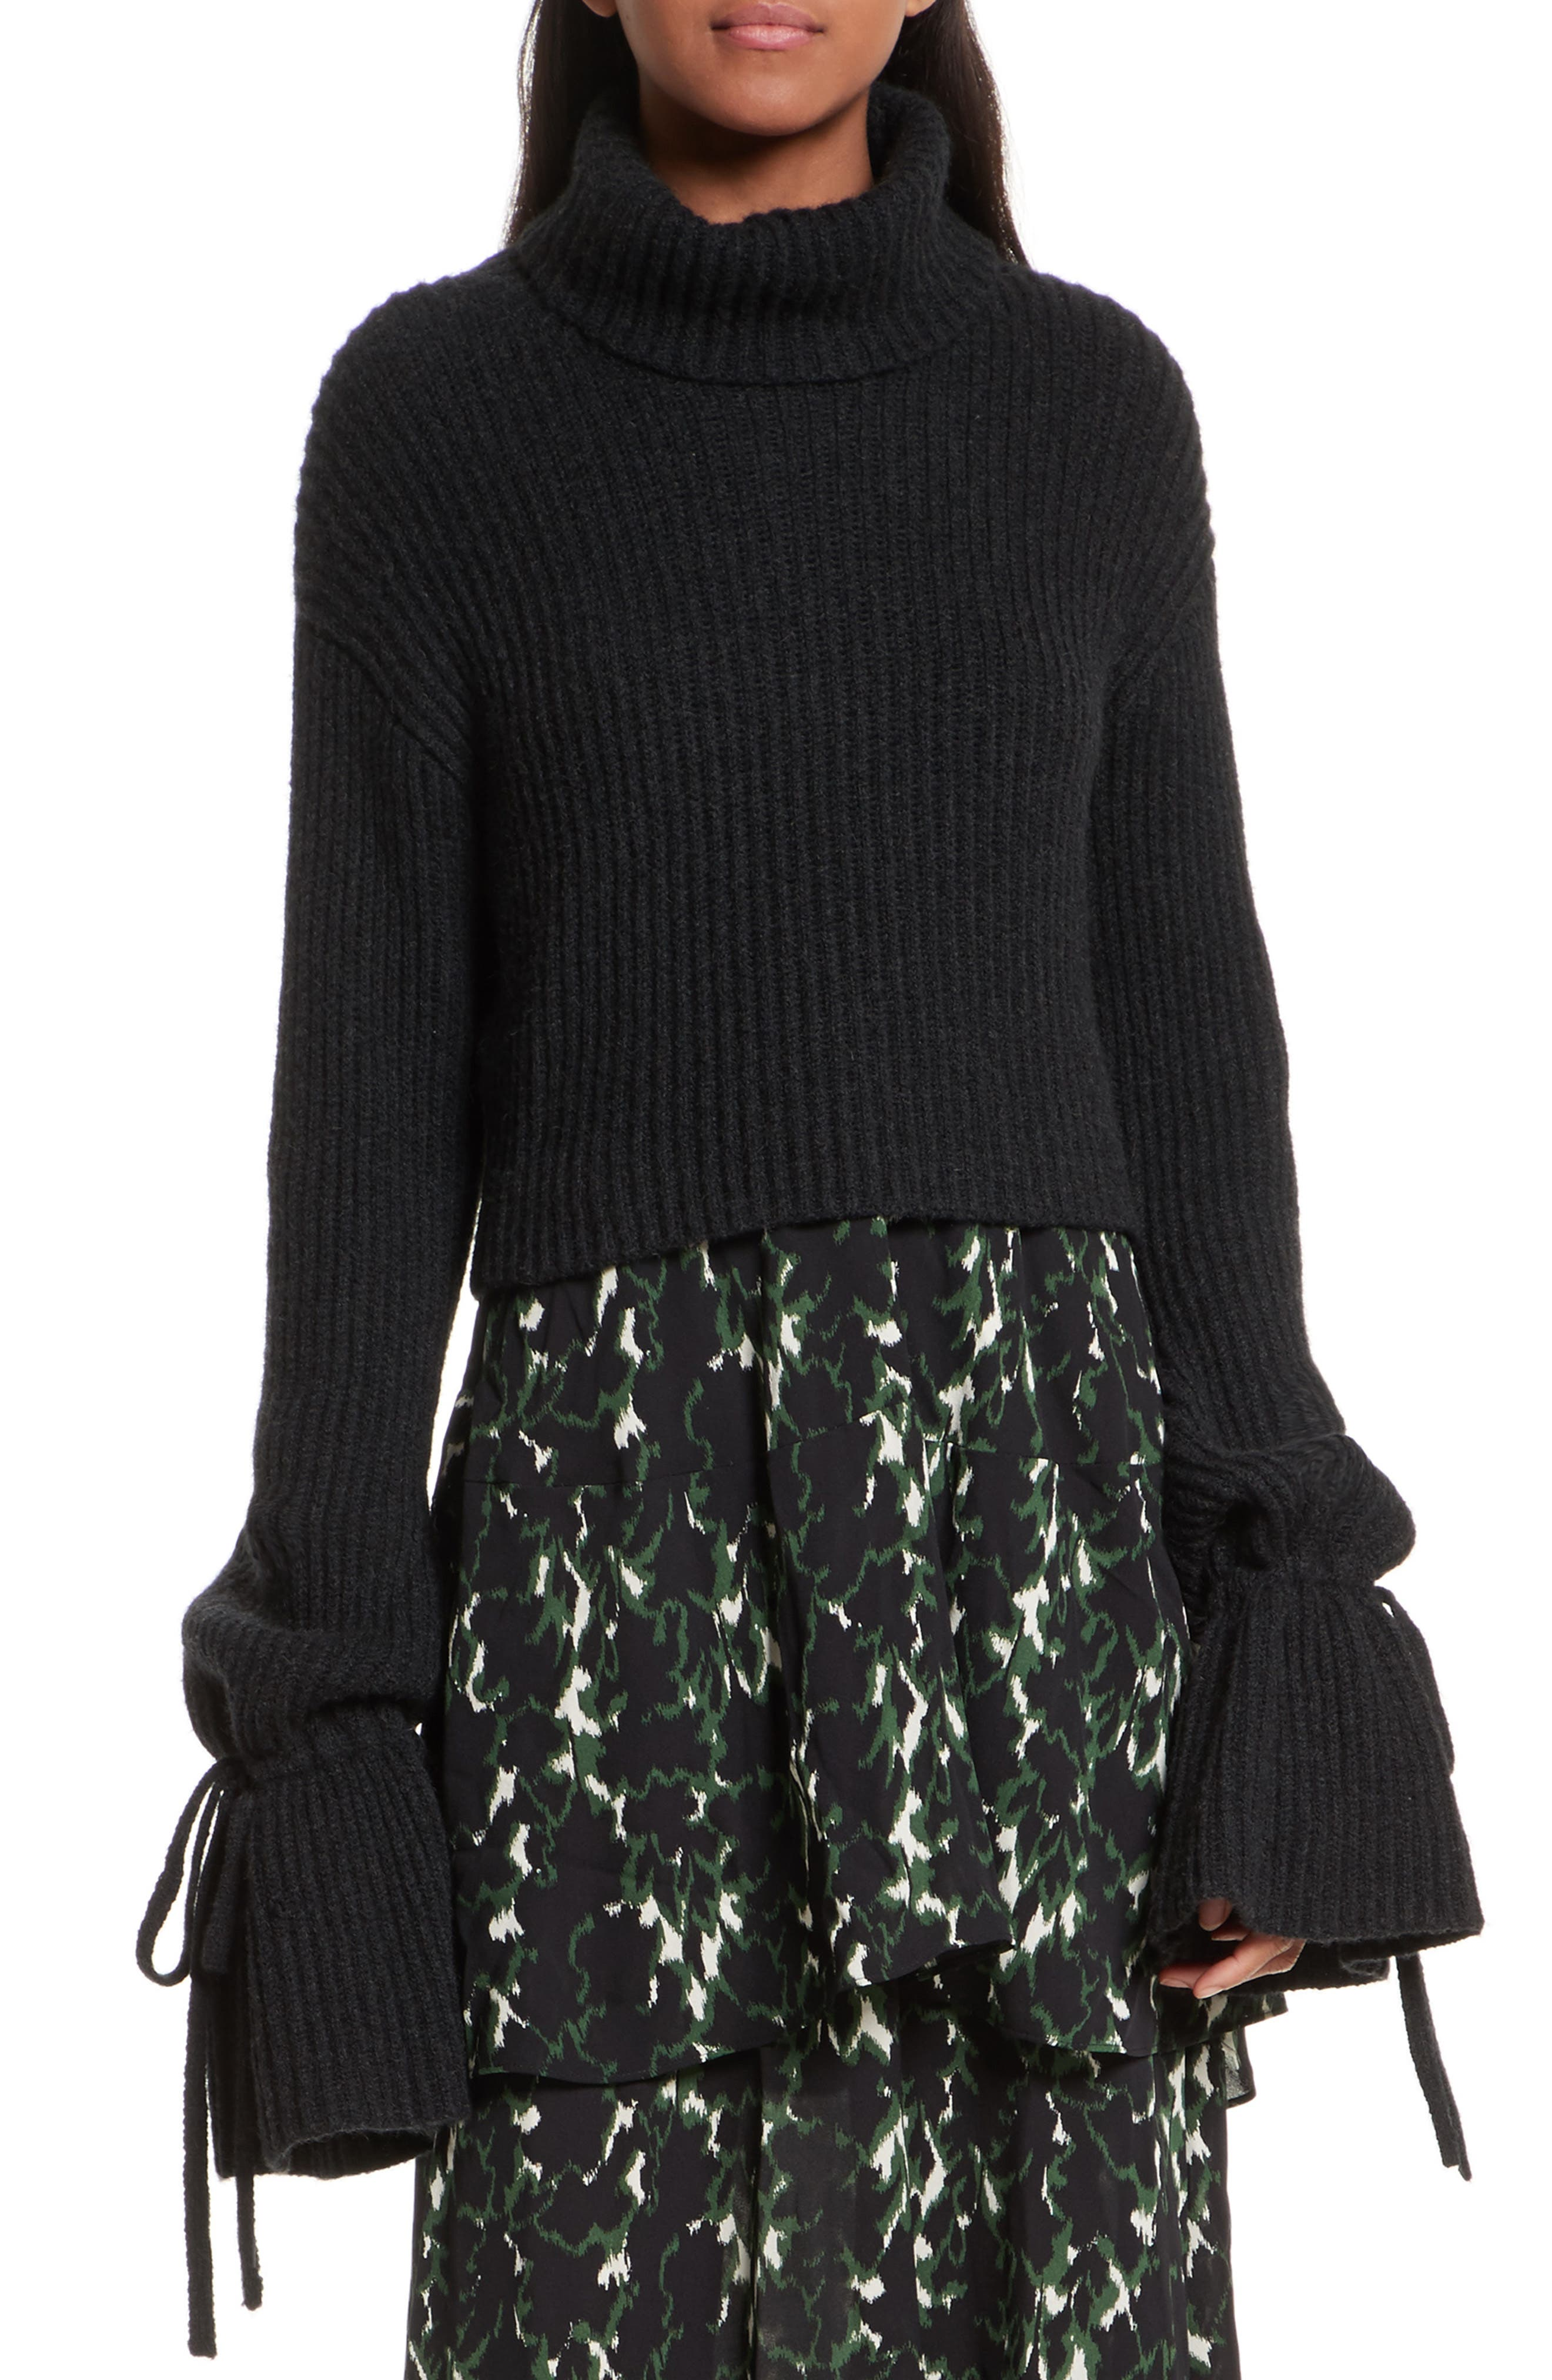 Emilie Wool & Camel Hair Turtleneck Sweater,                         Main,                         color, Charcoal